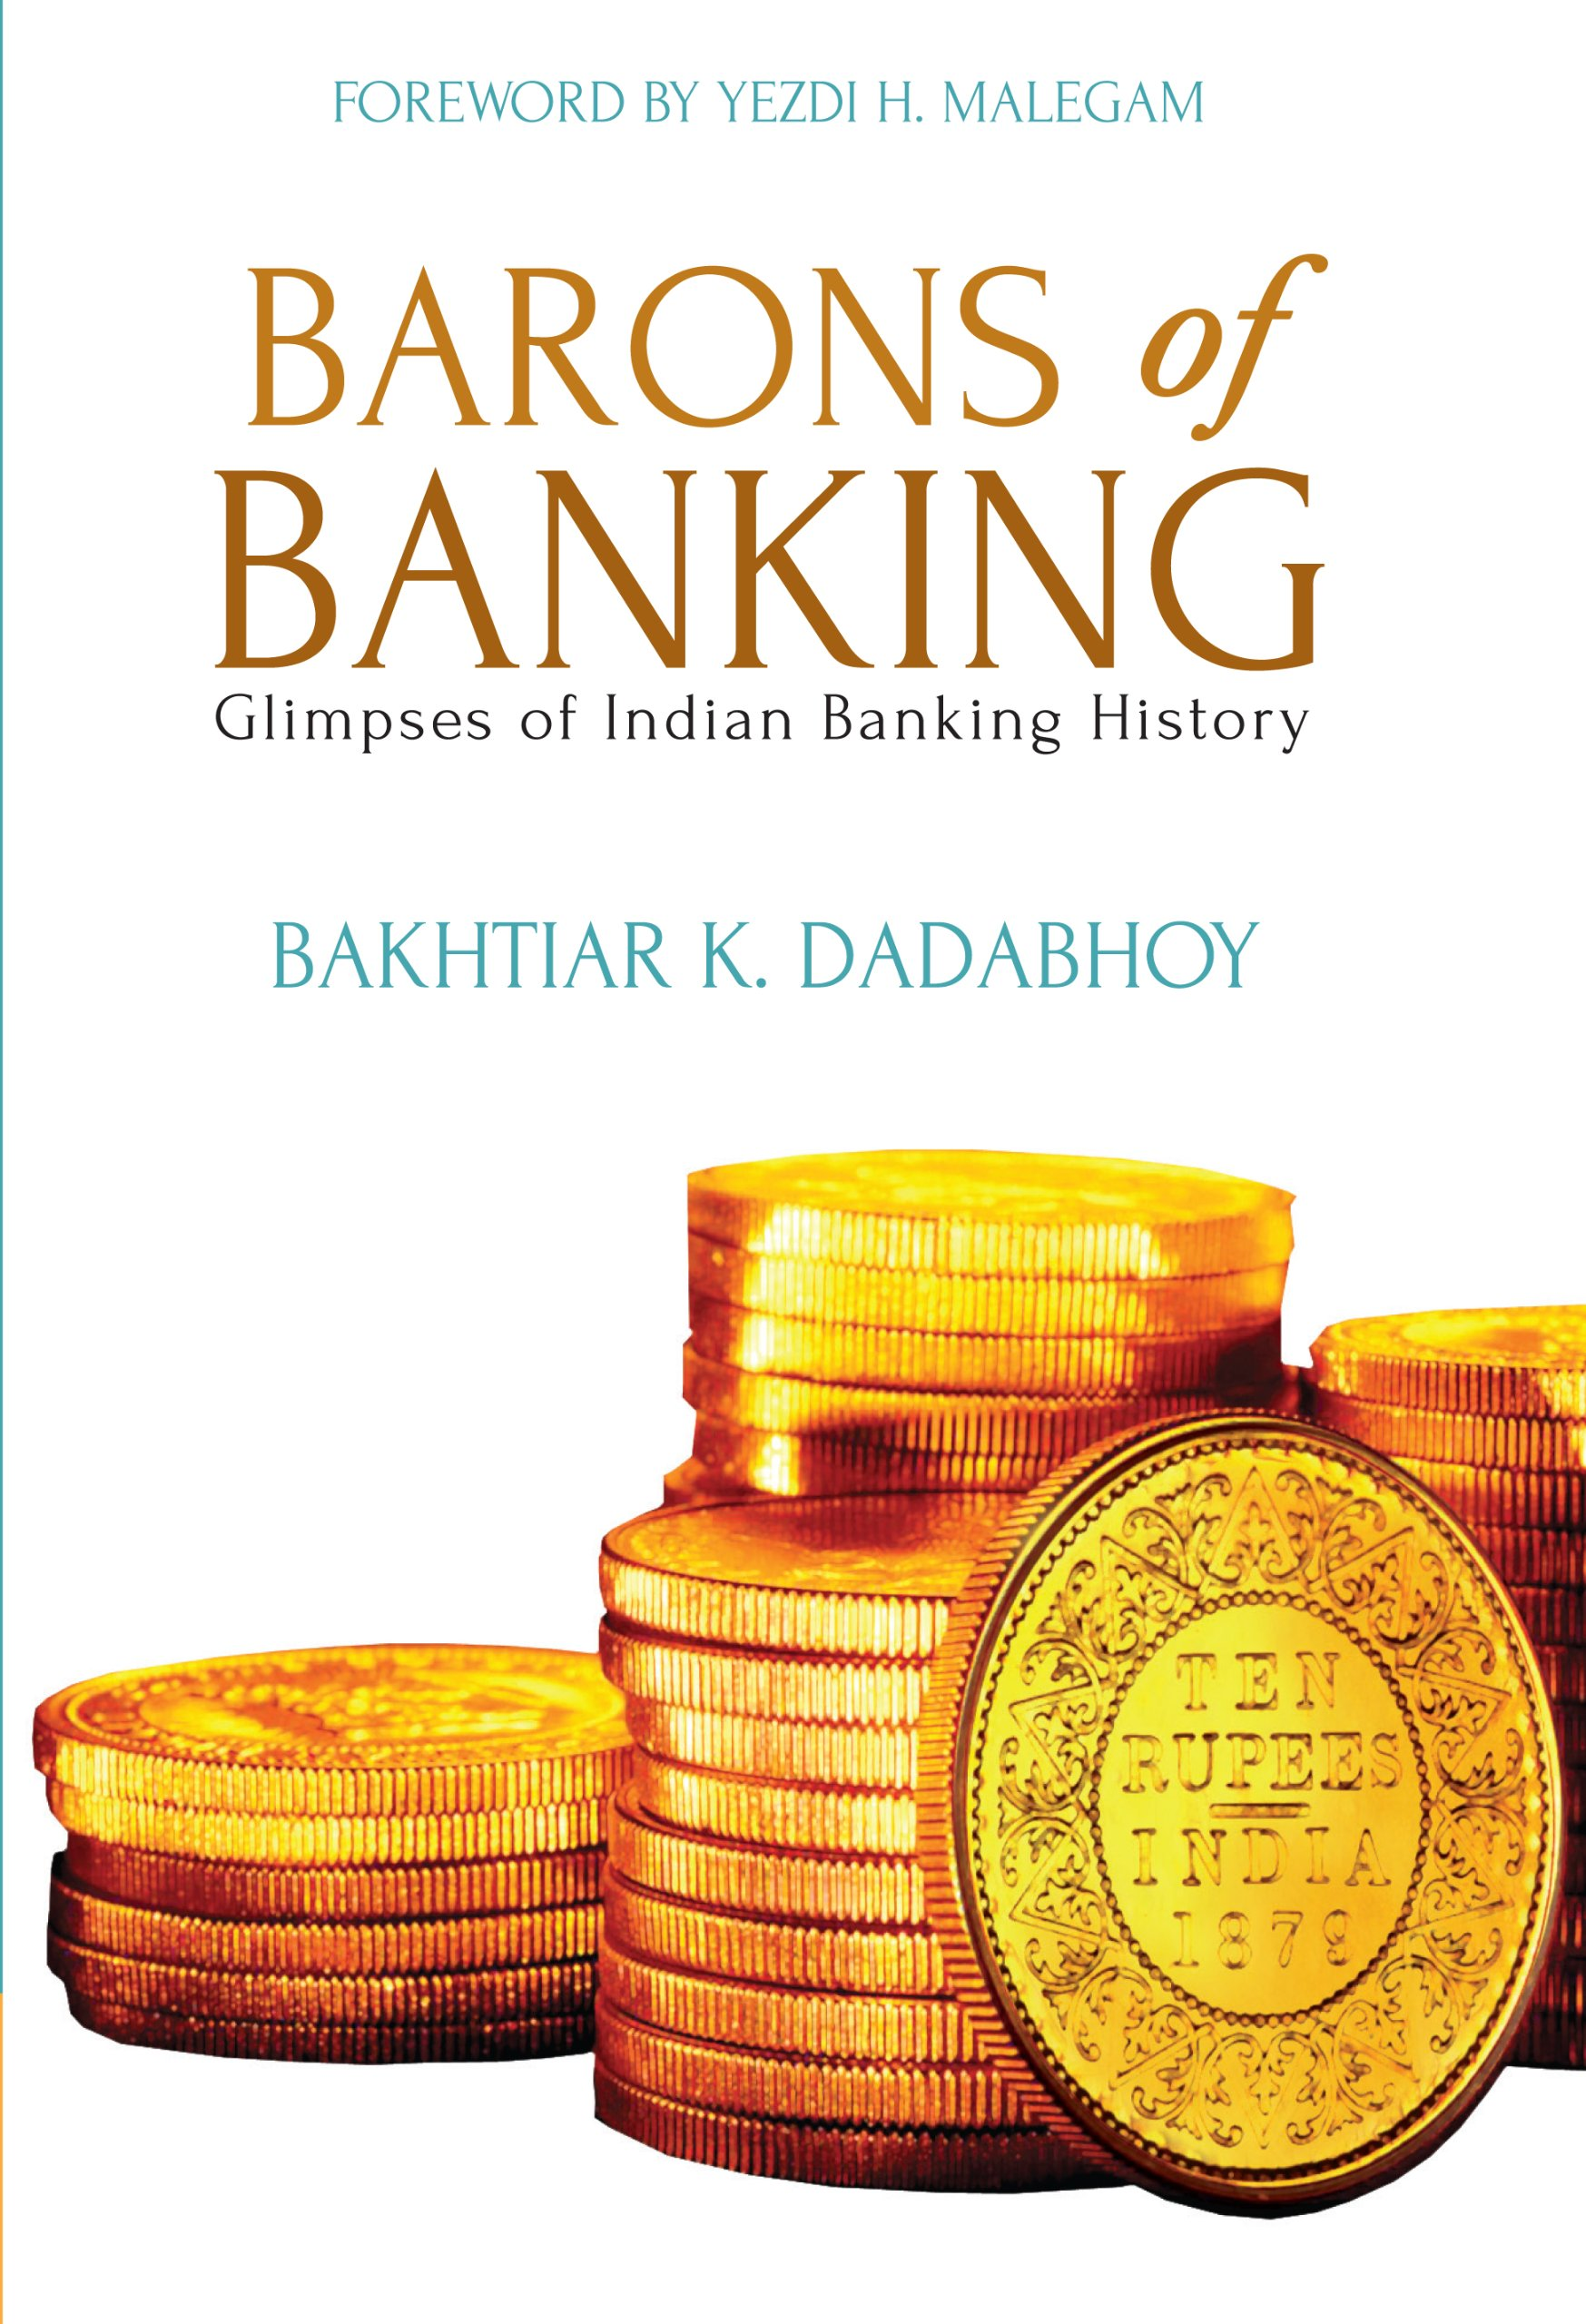 Buy barons of banking glimpses of indian banking history book buy barons of banking glimpses of indian banking history book online at low prices in india barons of banking glimpses of indian banking history reviews fandeluxe Choice Image